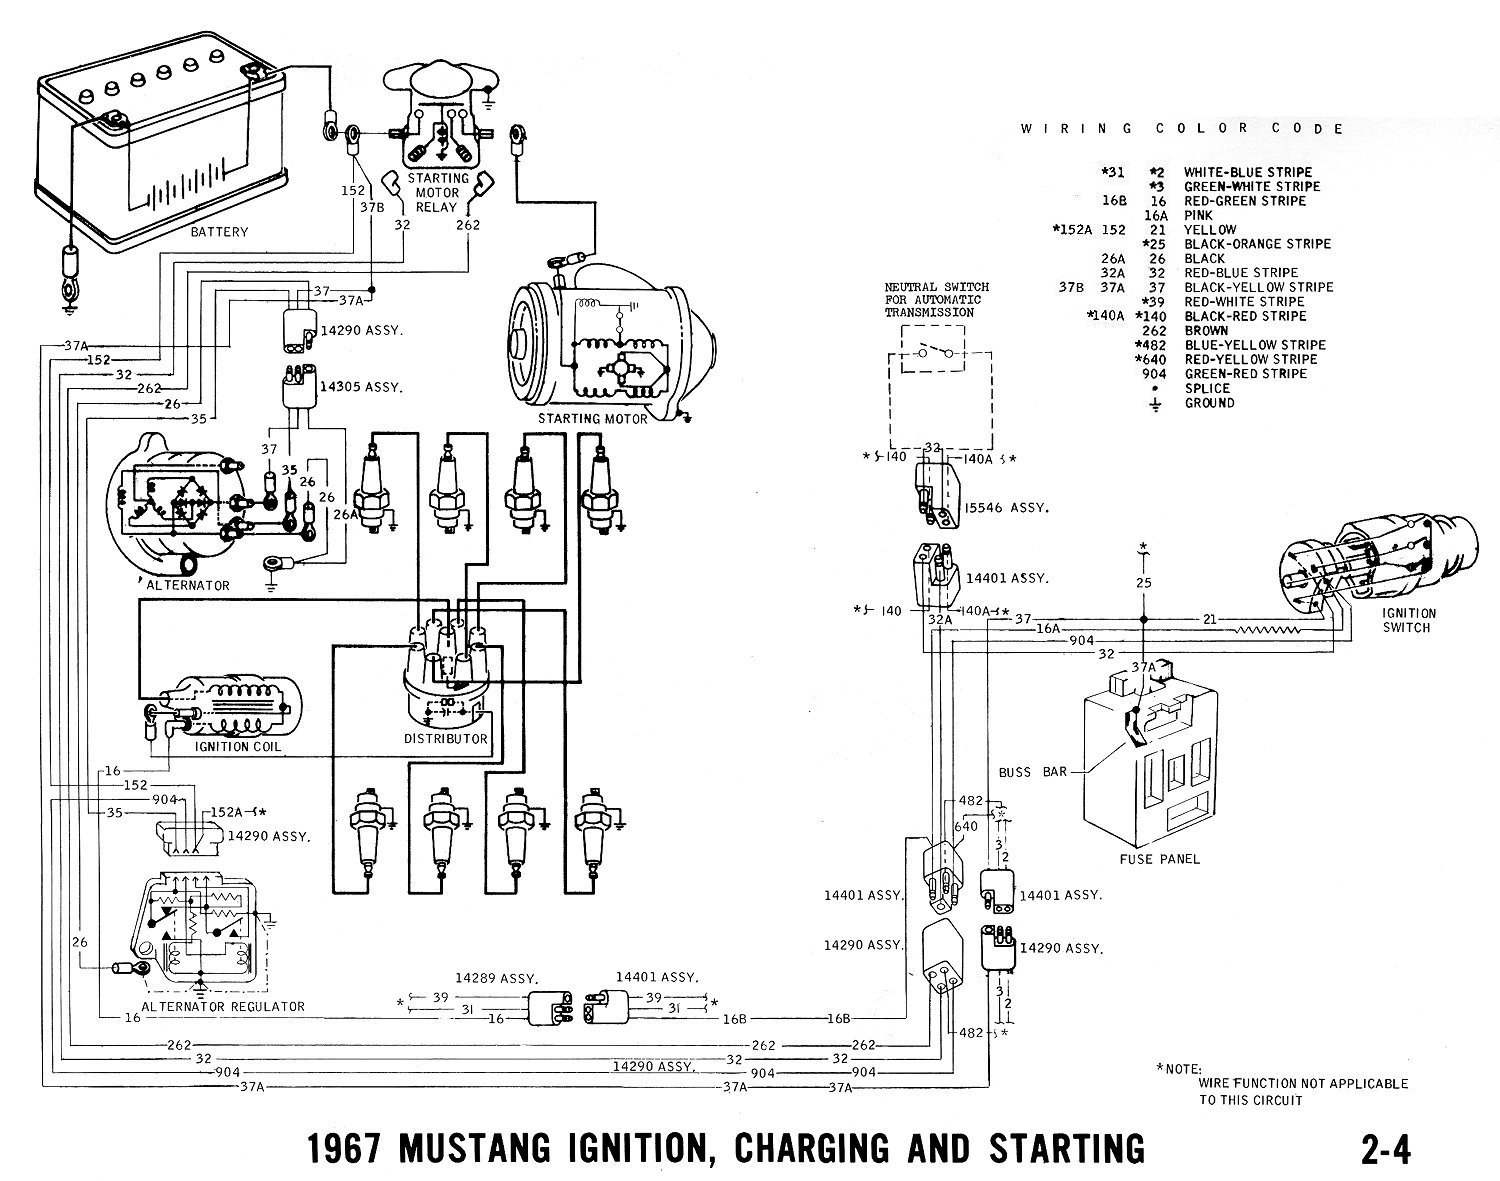 1969 ford resistor wire diagram wiring schematic diagram Ford Alternator Regulator Wiring resistor wire bypass vintage mustang forums receiver wire diagram